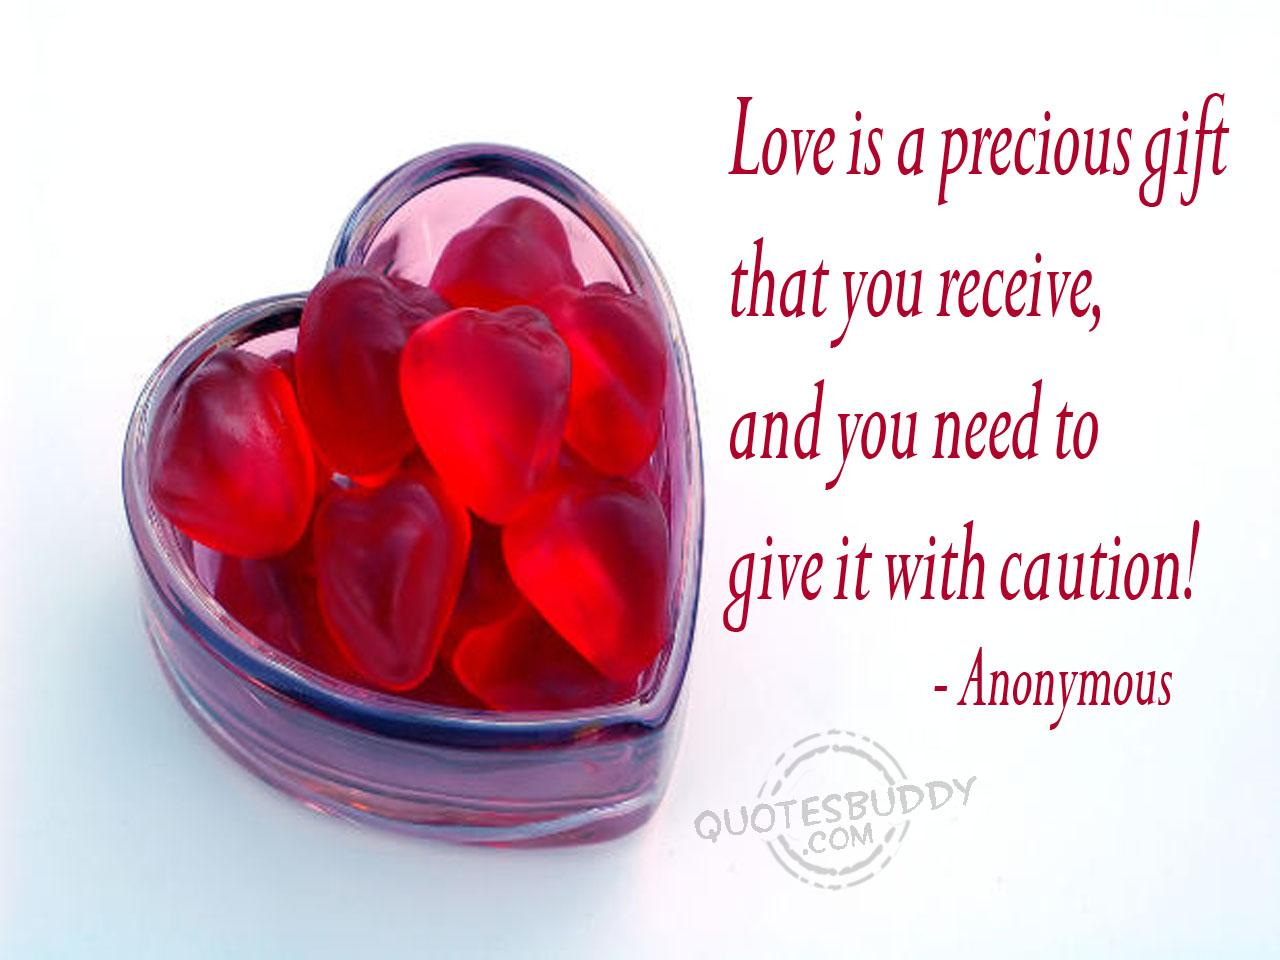 Quotes about Gift Of Love (7 quotes)